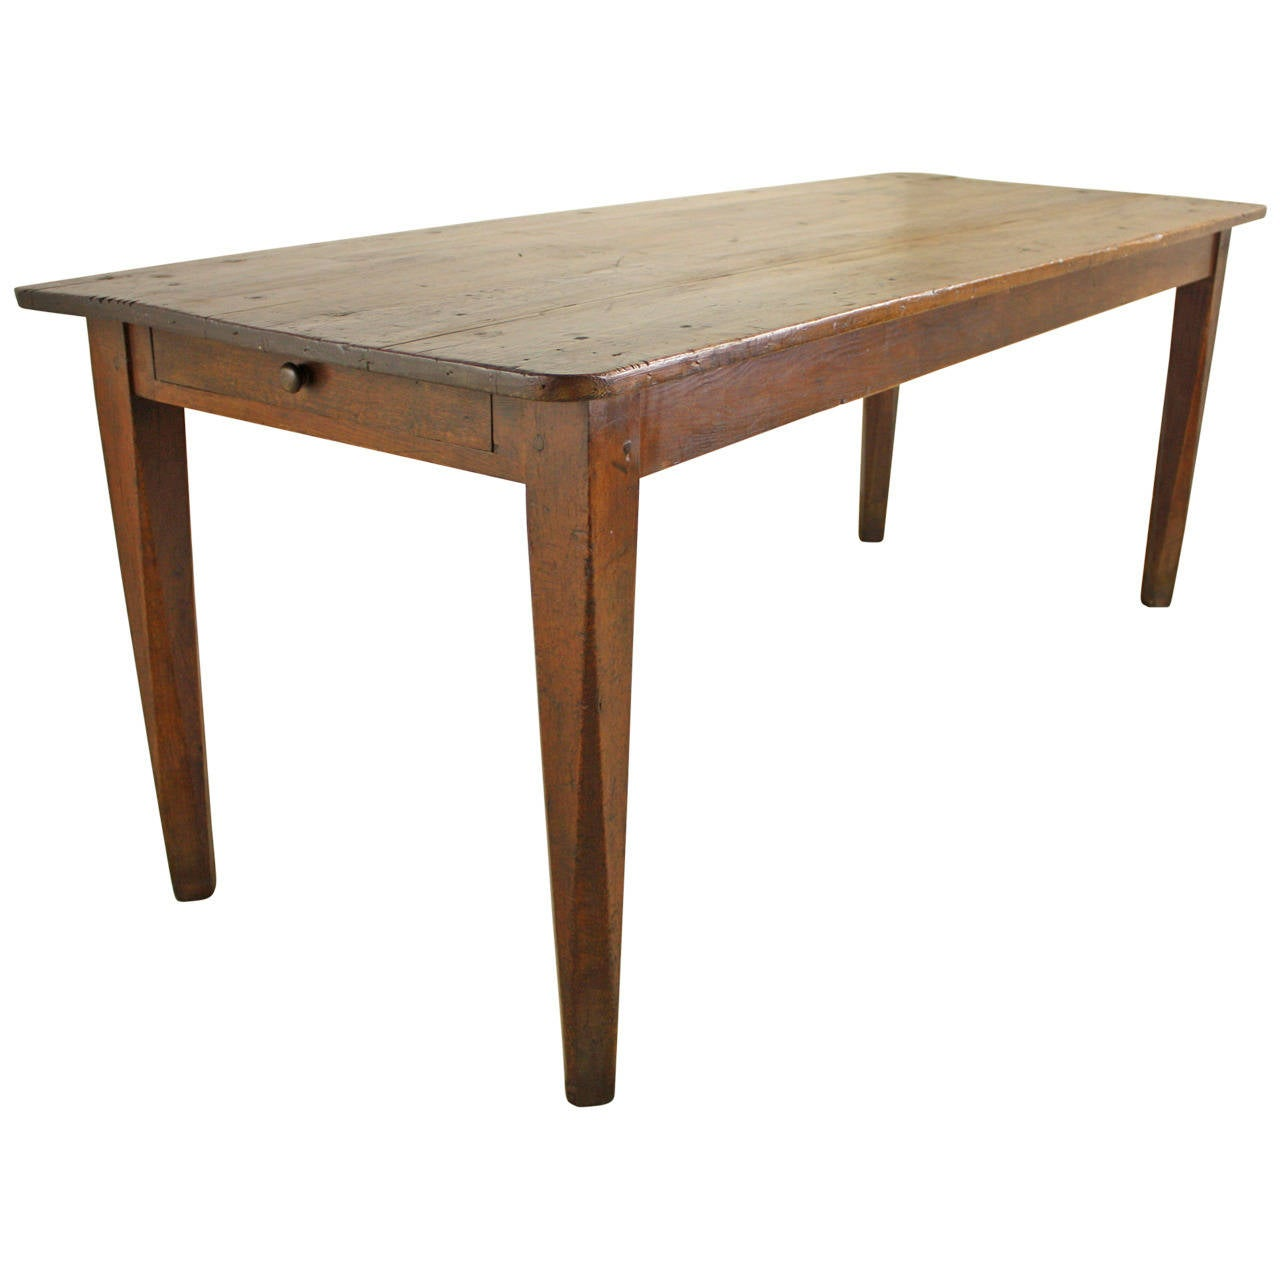 Antique French Pine Farmhouse Table at 1stdibs : 1923812l from www.1stdibs.com size 1280 x 1280 jpeg 64kB